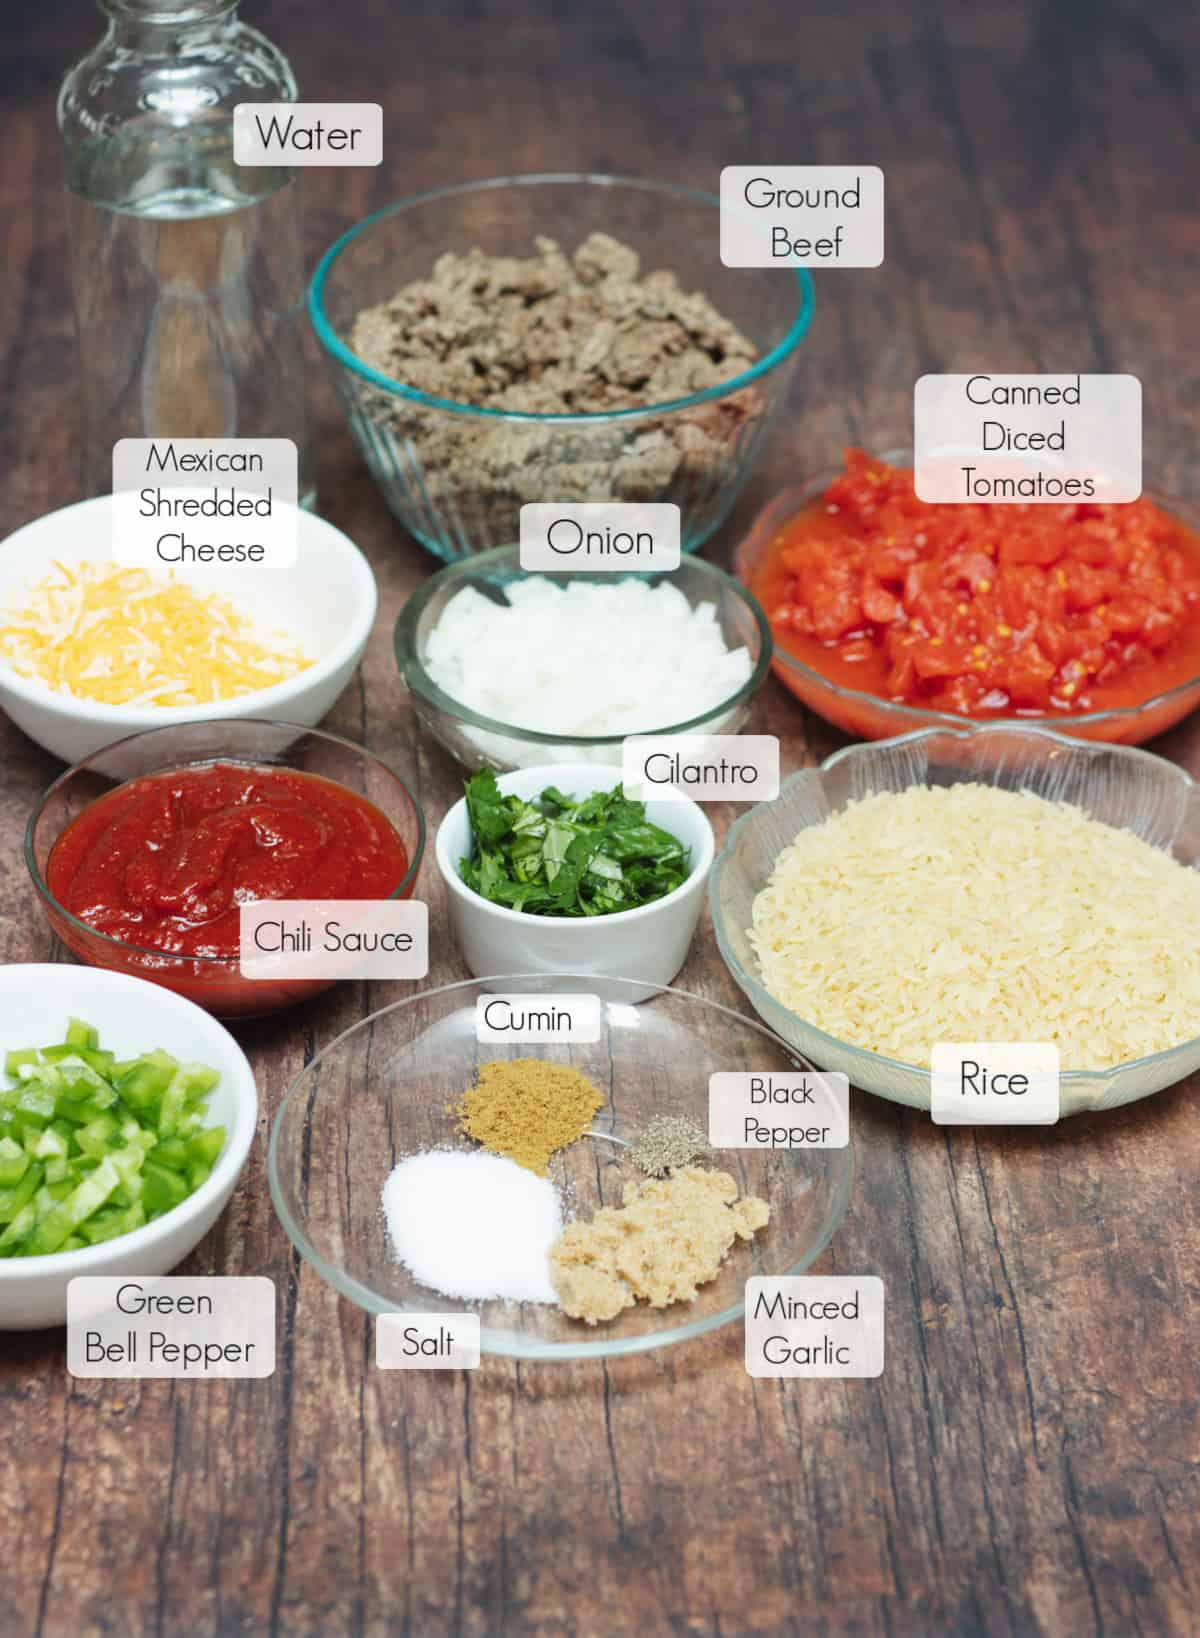 Ingredients in bowls for Spanish Rice with Ground Beef with labels for each.